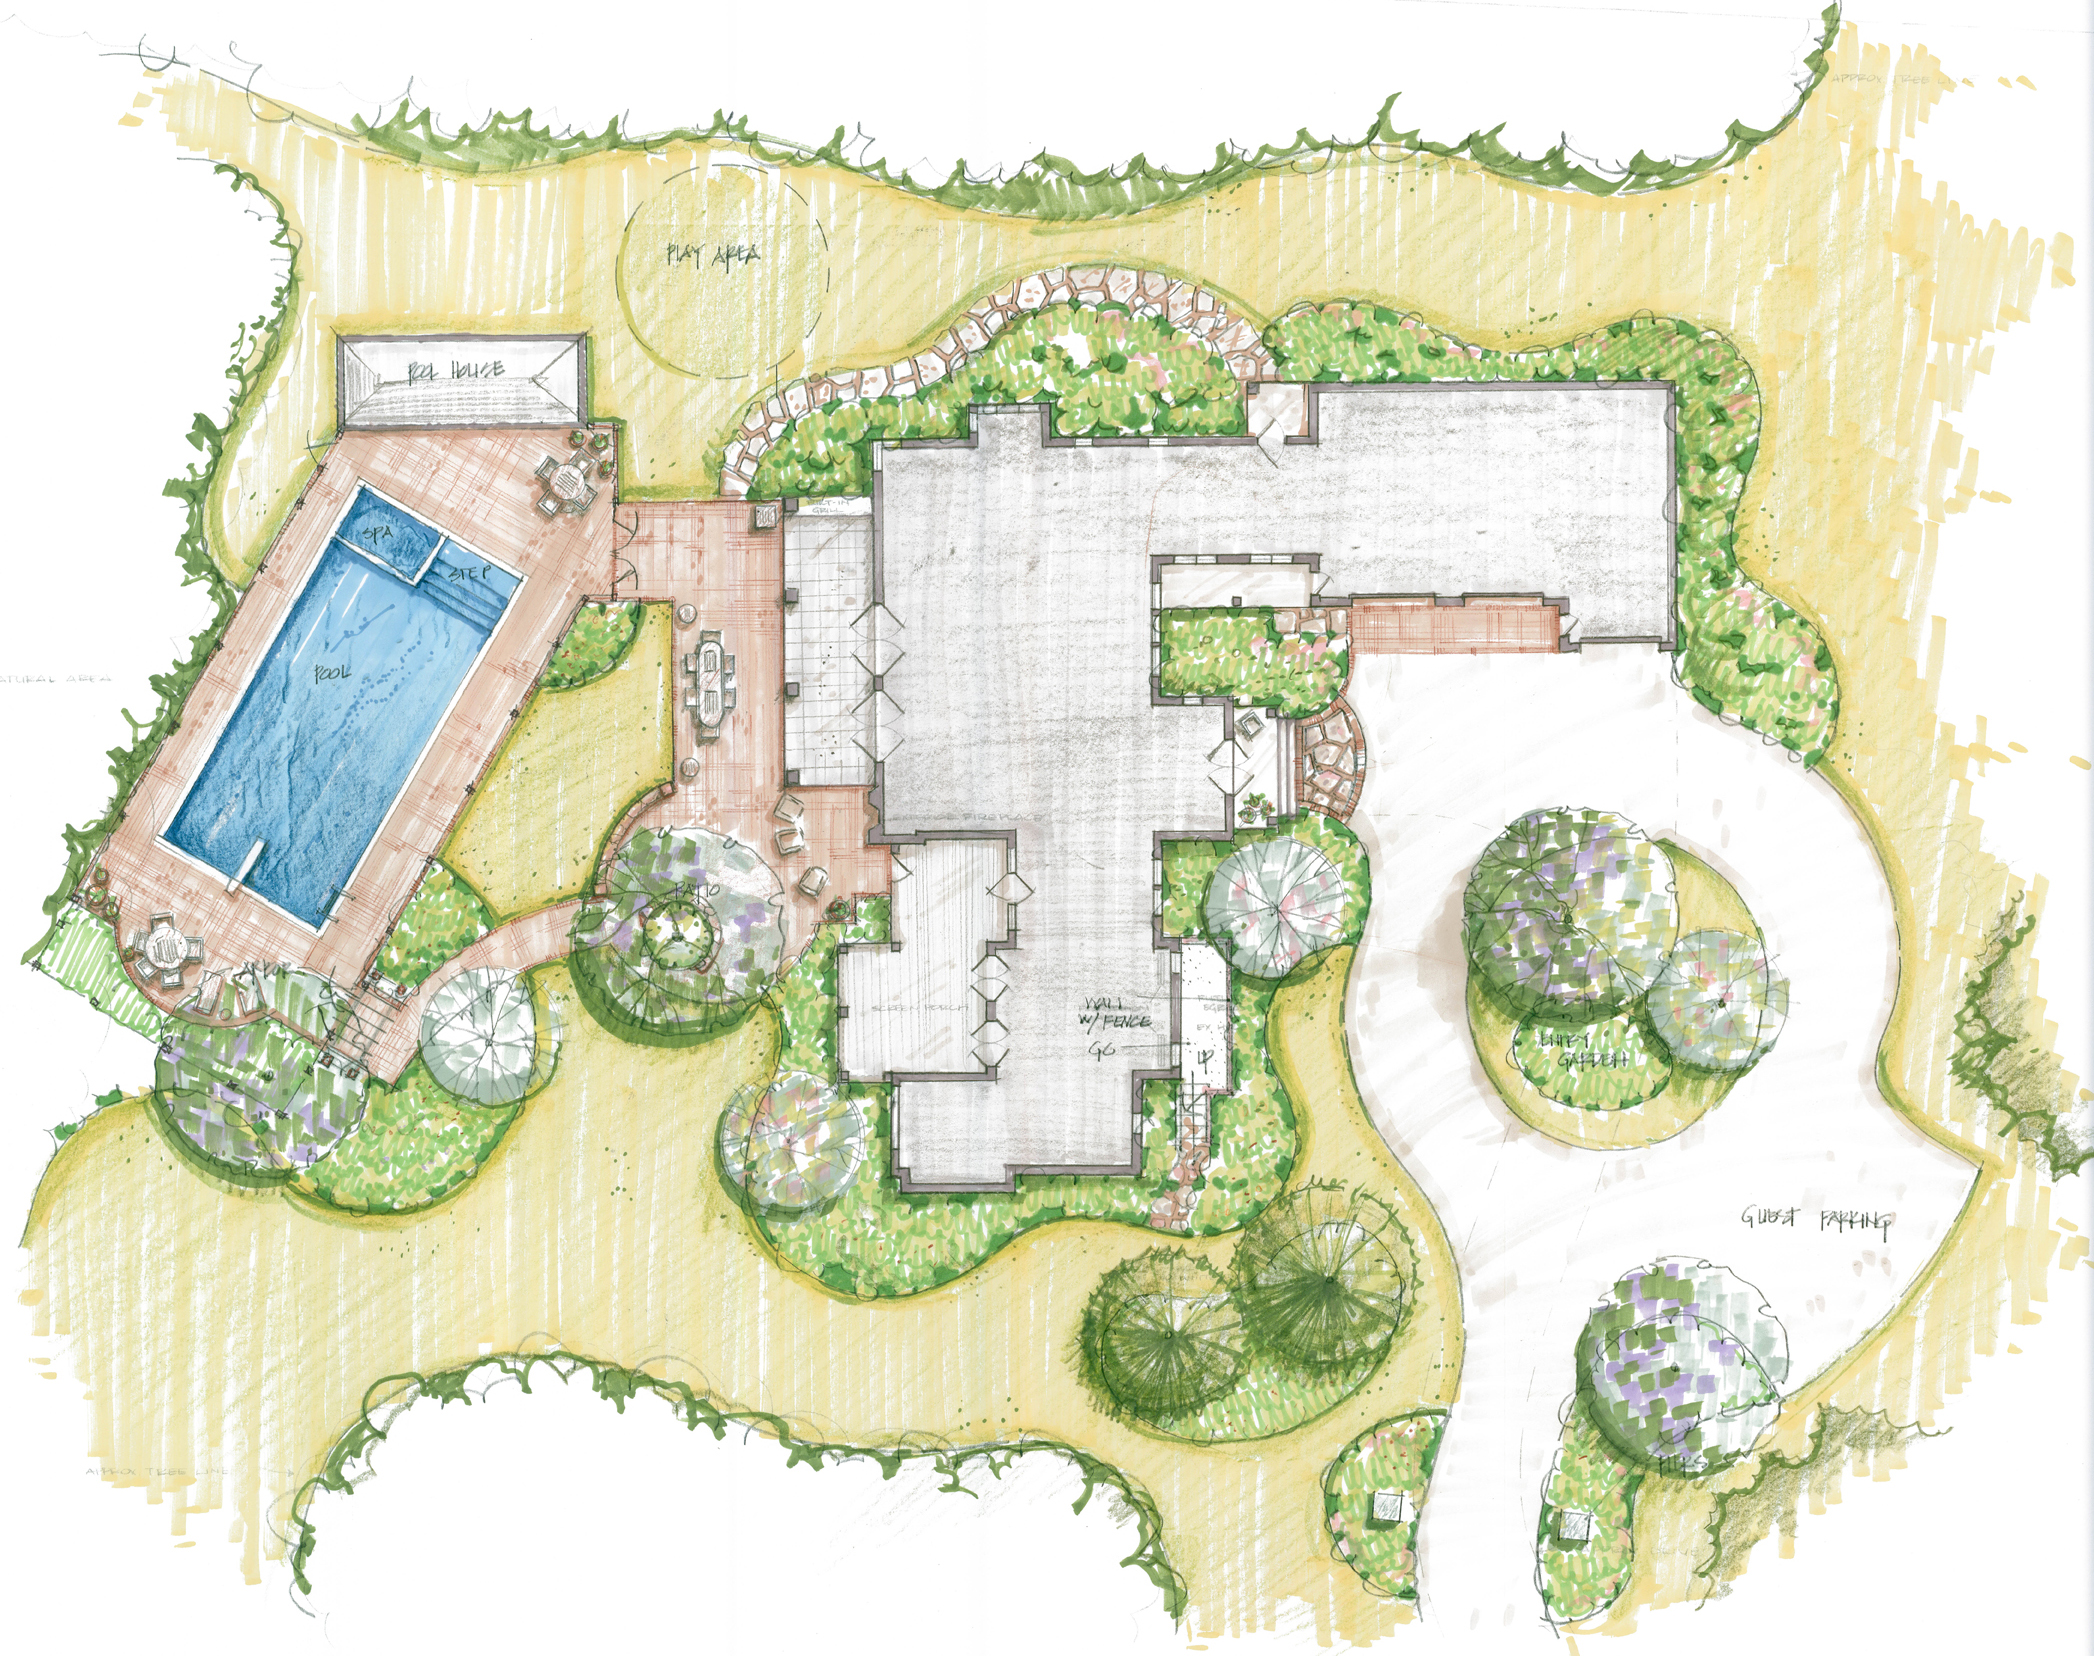 5 simple reasons to plan your landscape design landscape for Landscape design plans